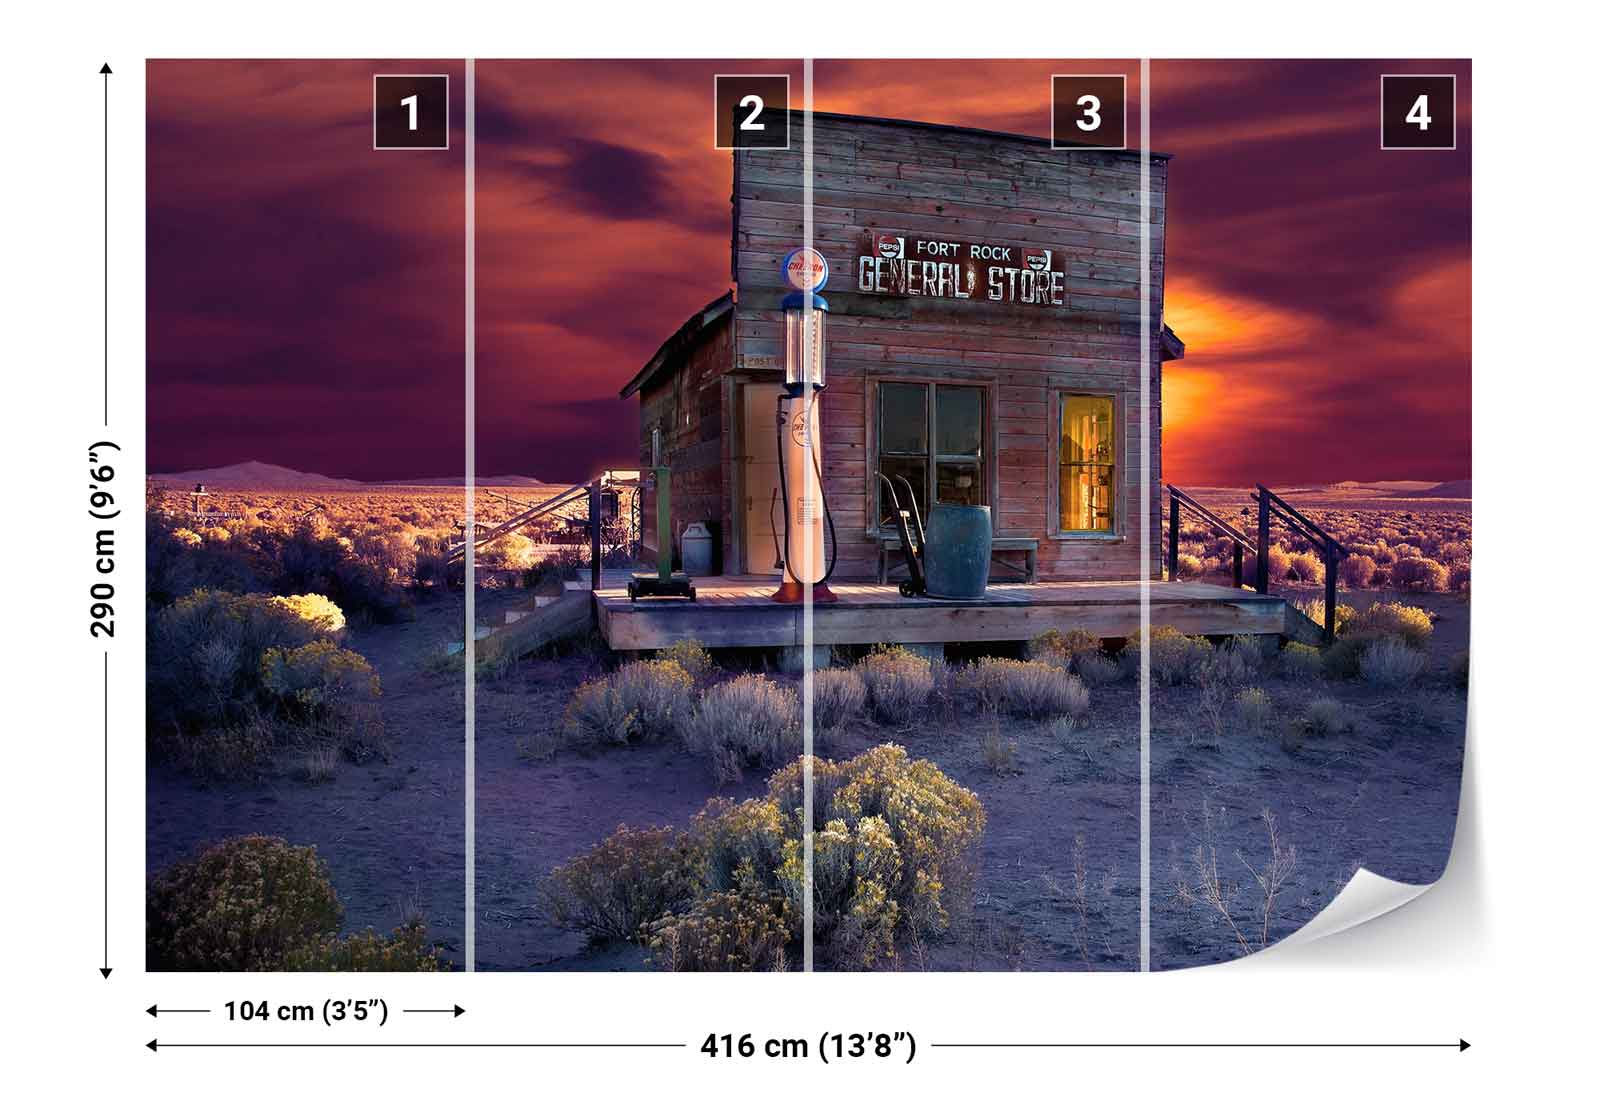 wasteland bar store sunset photo wallpaper wall mural 1x. Black Bedroom Furniture Sets. Home Design Ideas